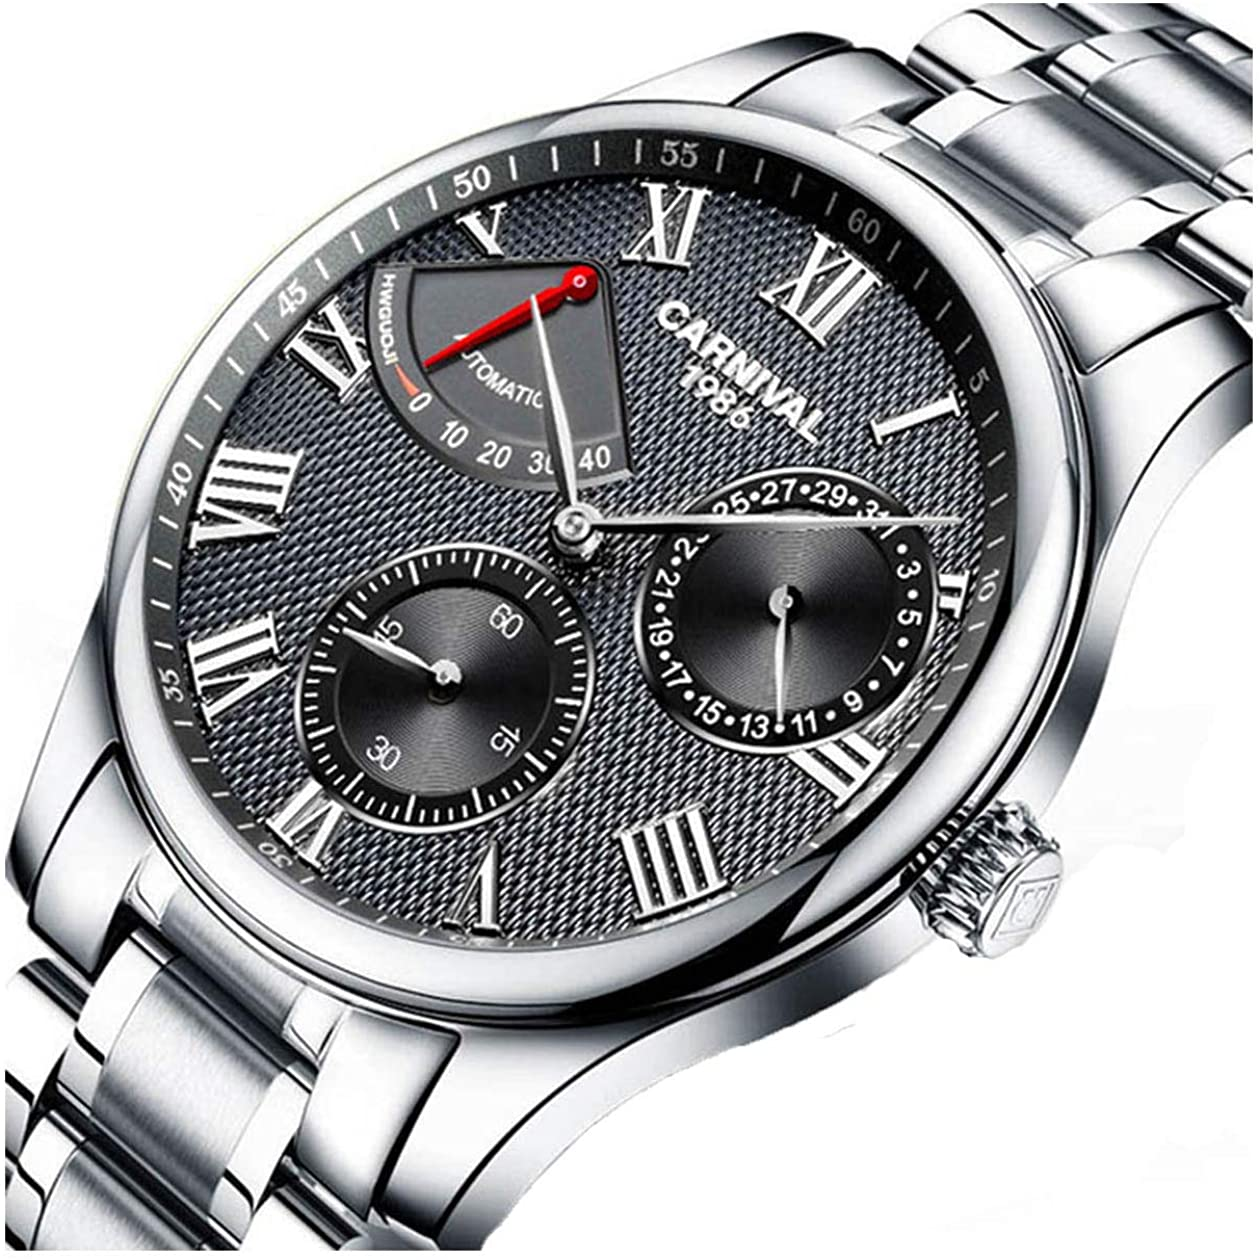 Men's Automatic Watches Power Reserve Display Stainless Steel Watches Waterproof Swiss Gents Wrist Watch